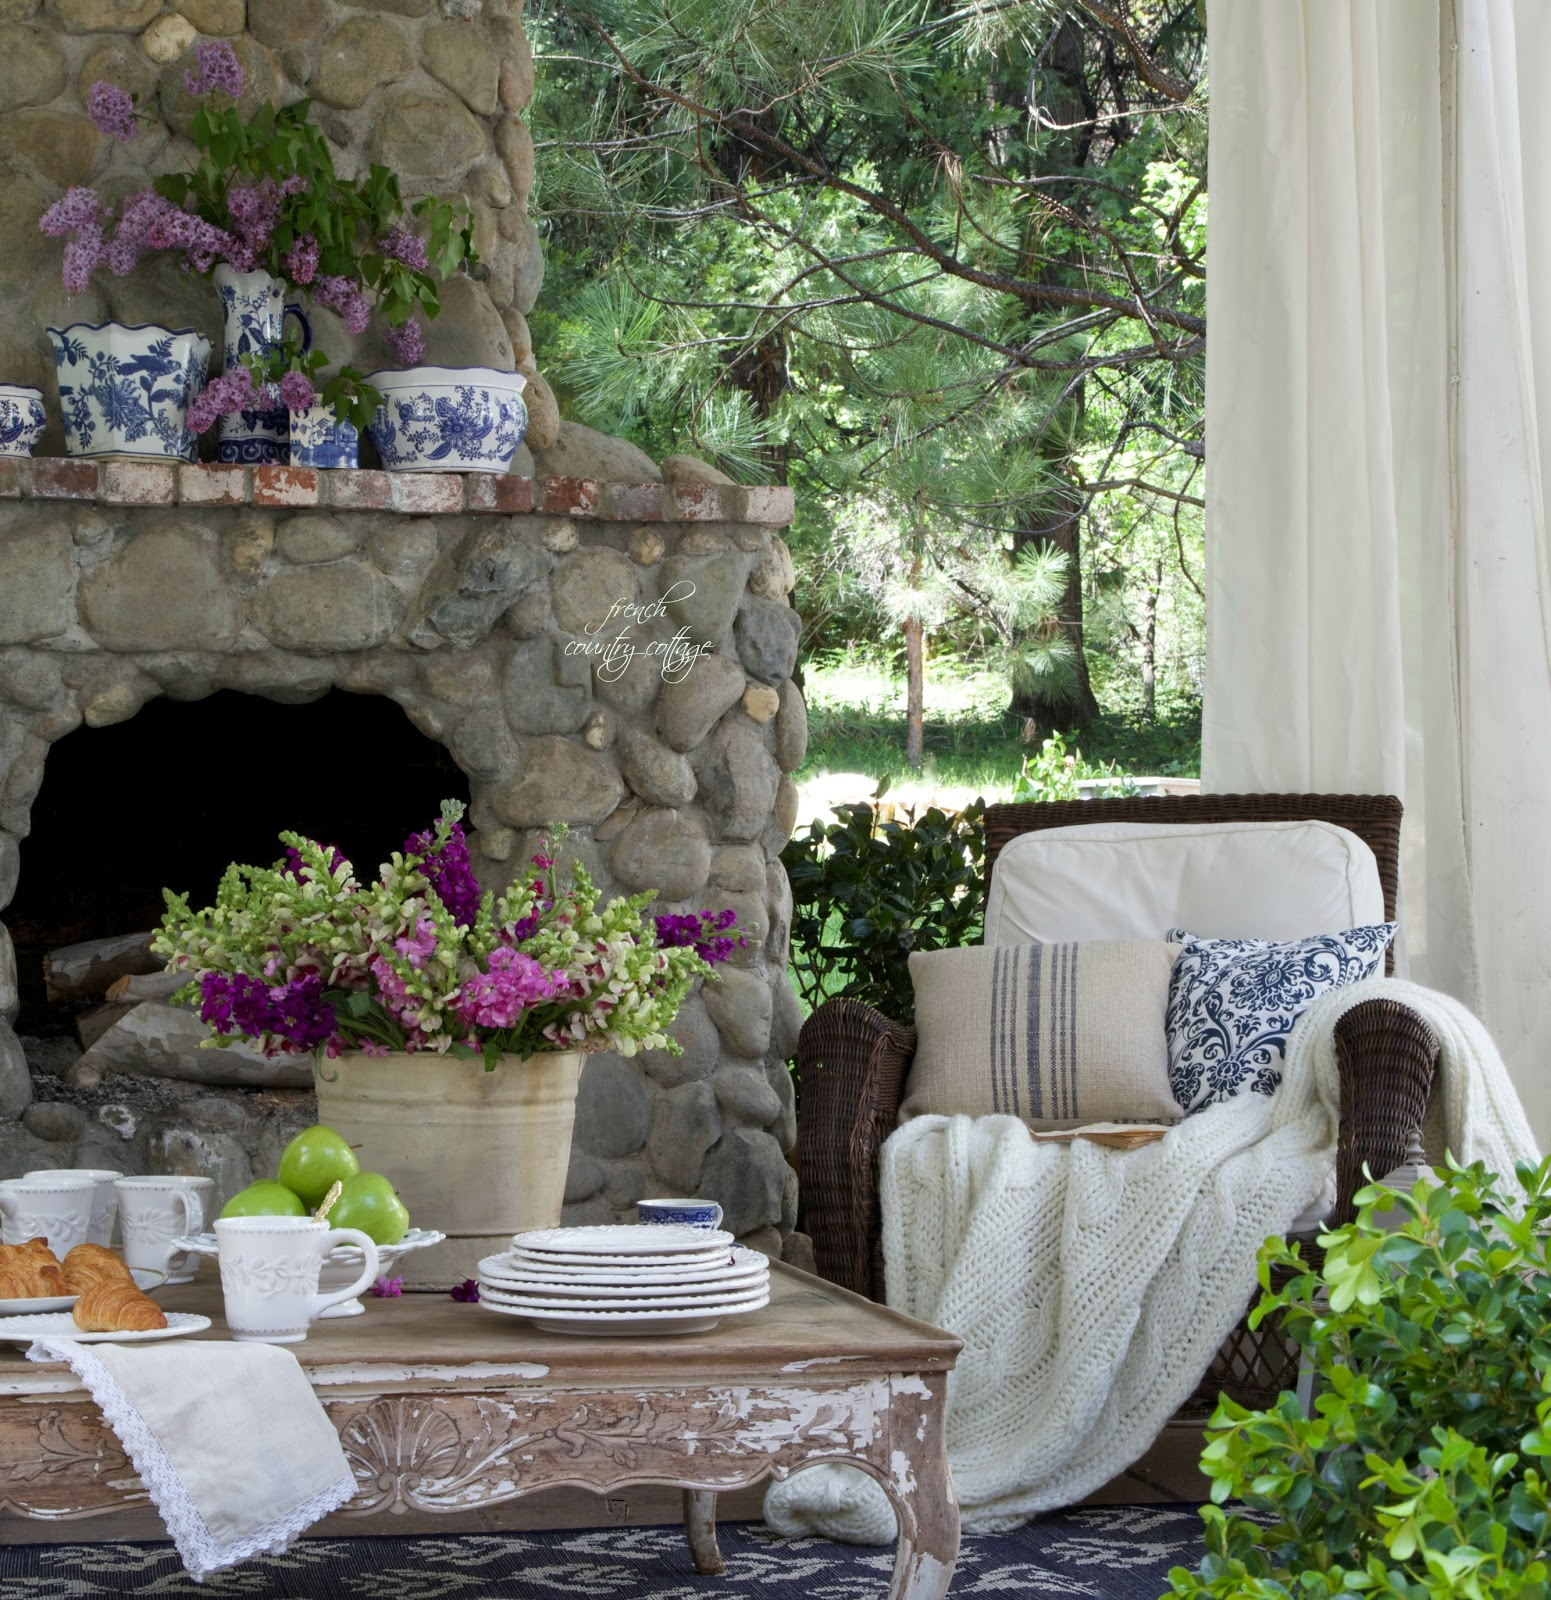 Summer Garden Party Event - FRENCH COUNTRY COTTAGE